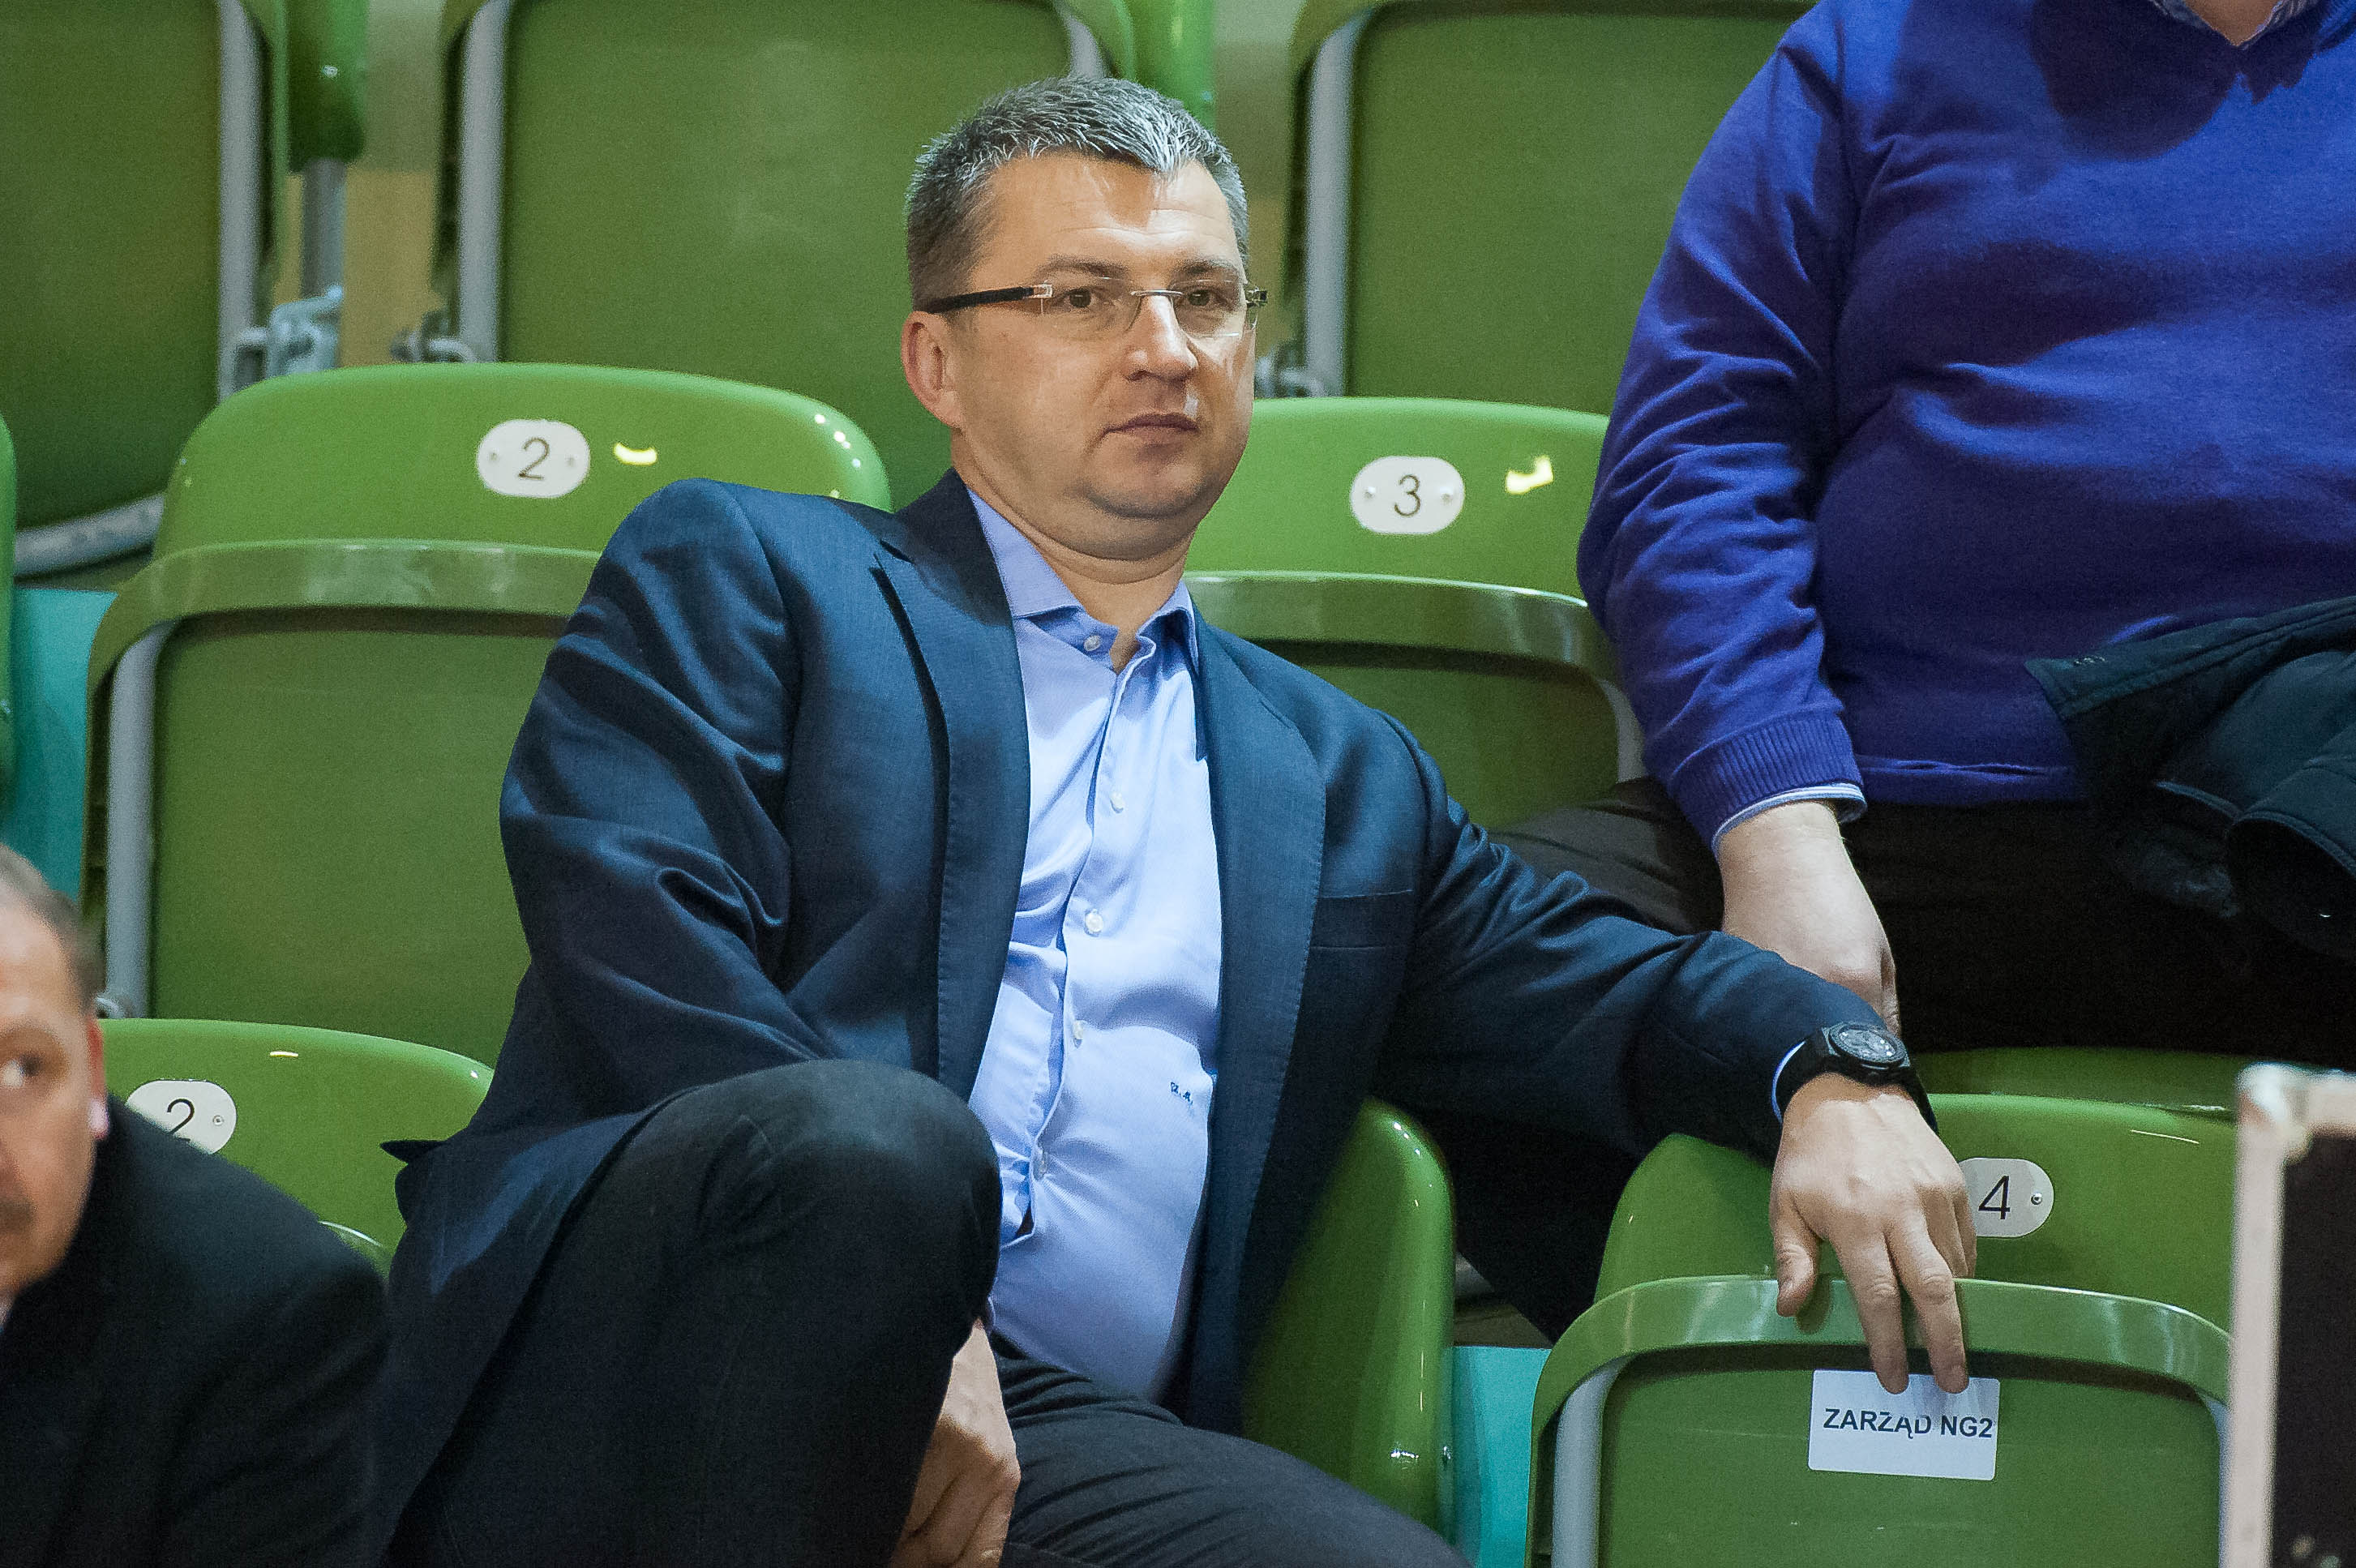 22.01.2014 POLKOWICE KOSZYKOWKA KOBIET EUROLIGA SEZON 2013/2014 BASKETBALL WOMEN EUROLEAGUE SEASON 2013/2014 CCC POLKOWICE - PERFUMERIAS AVENIDA SALAMANCA N/Z DARIUSZ MILEK FOT PAWEL ANDRACHIEWICZ / PRESSFOCUS/NEWSPIX.PL --- Newspix.pl *** Local Caption *** www.newspix.pl mail us: info@newspix.pl call us: 0048 022 23 22 222 --- Polish Picture Agency by Ringier Axel Springer Poland